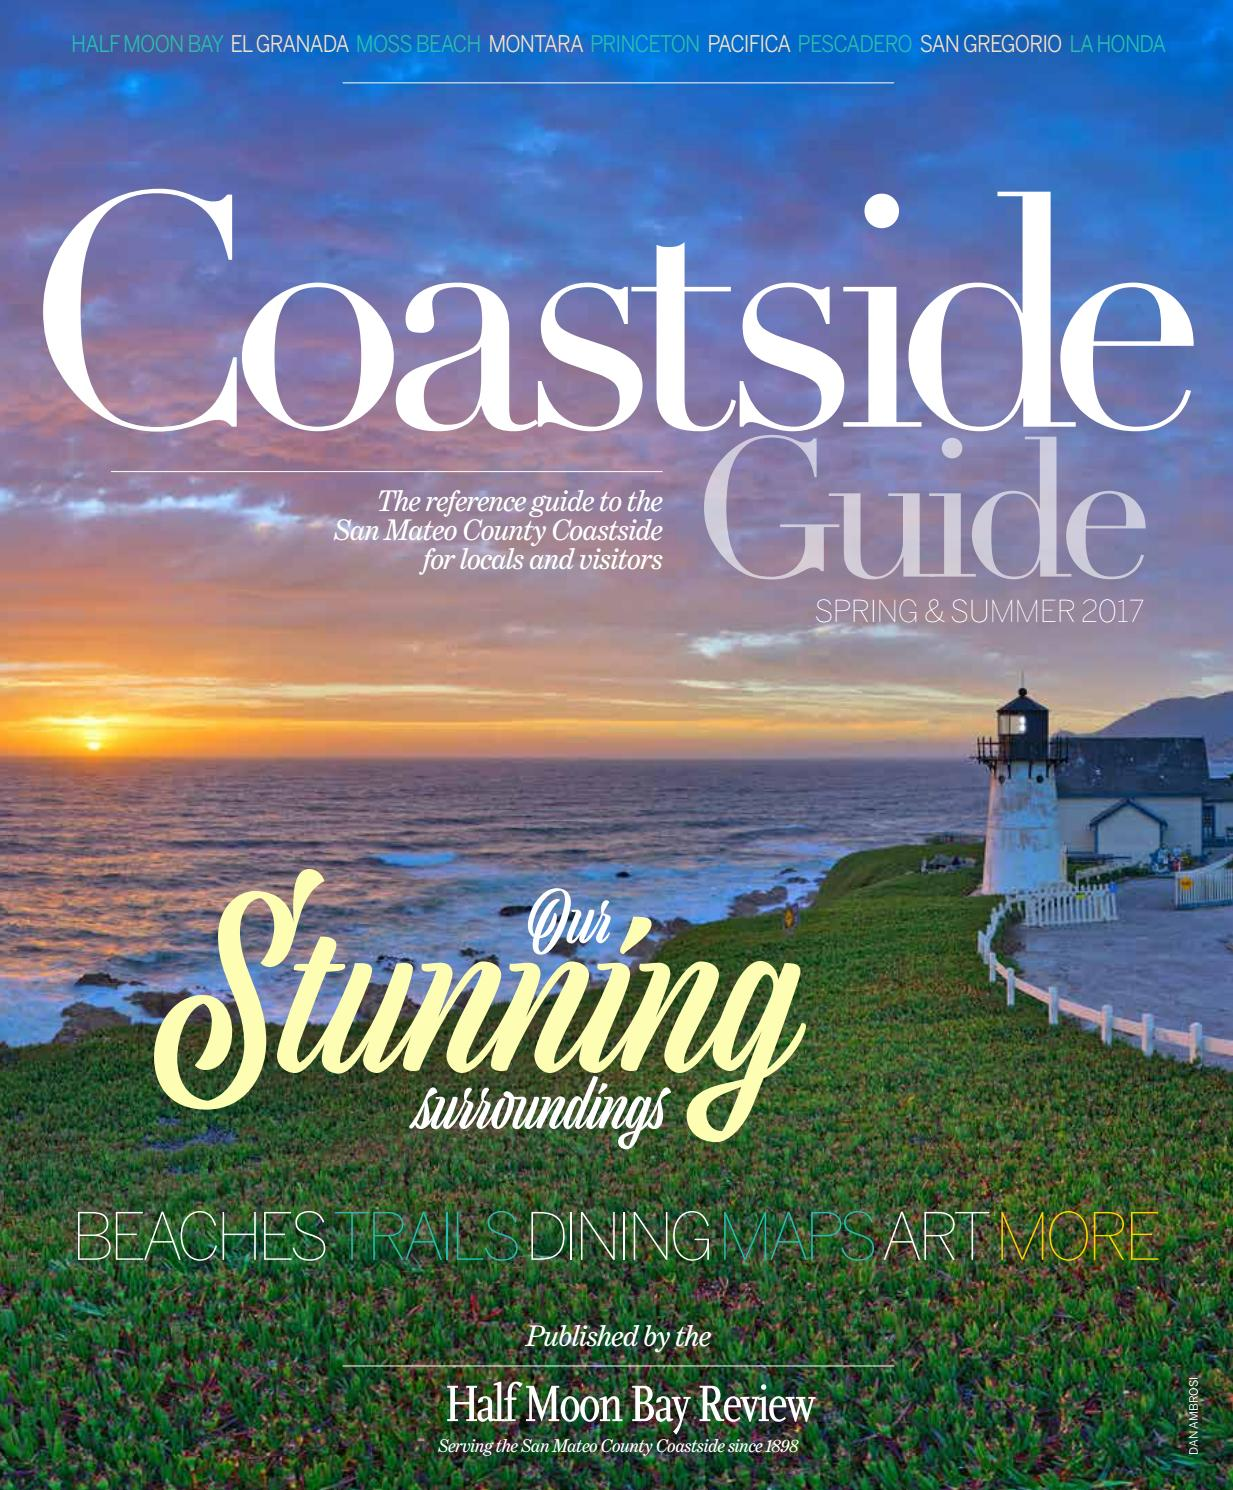 Coastside Guide Spring 2017 by Wick Communications - issuu